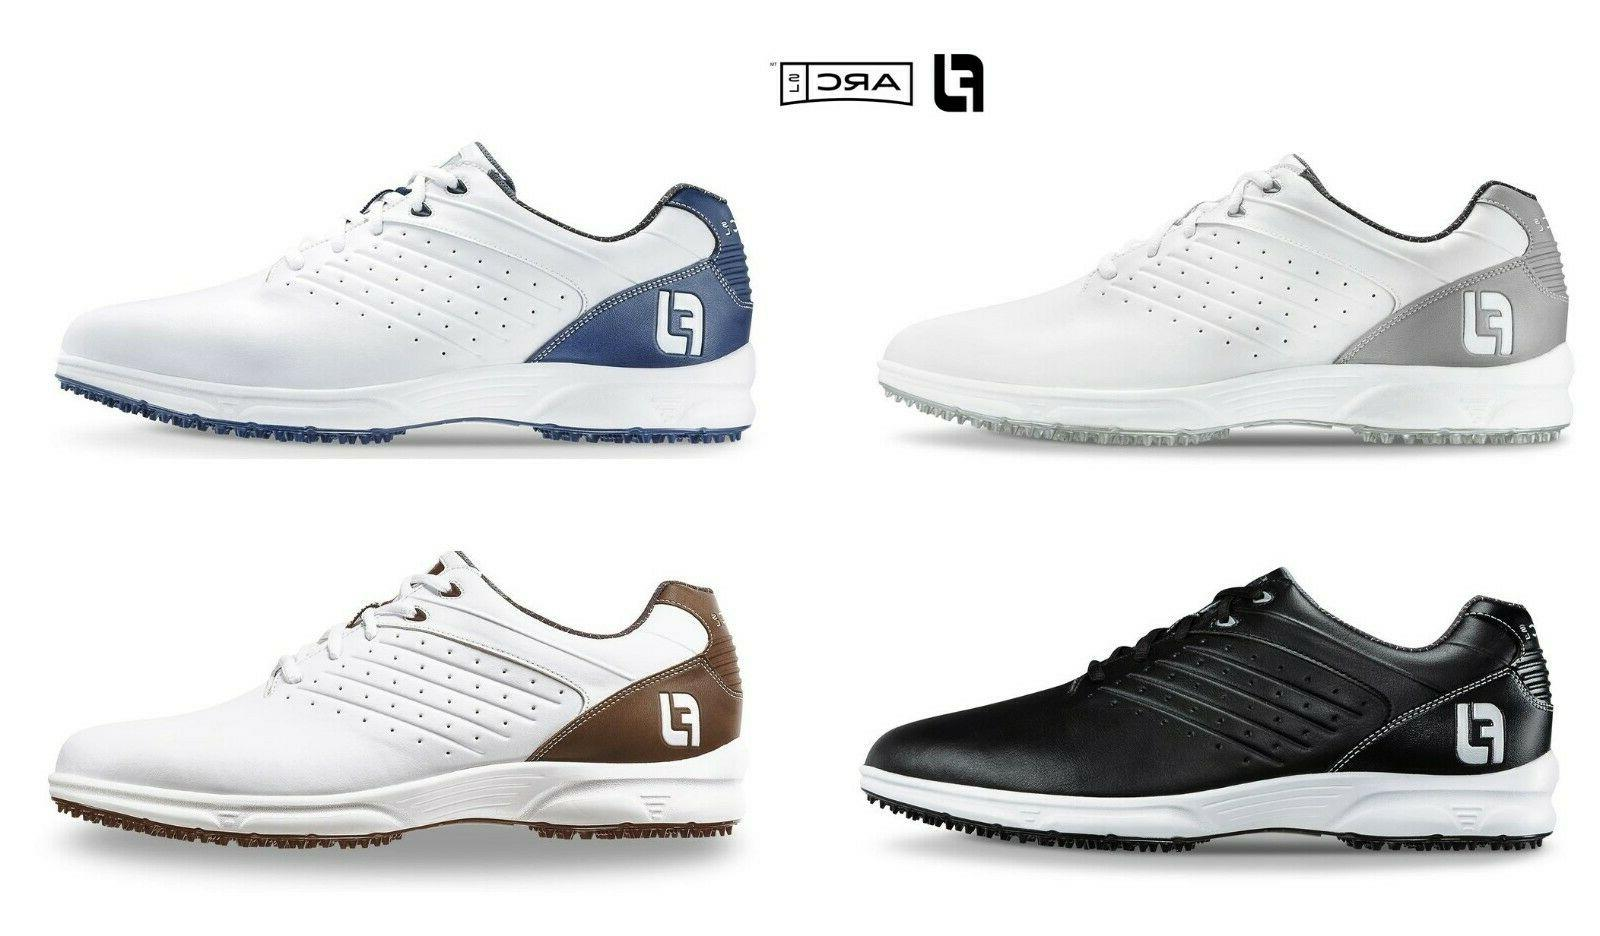 new mens arc sl spikeless golf shoes